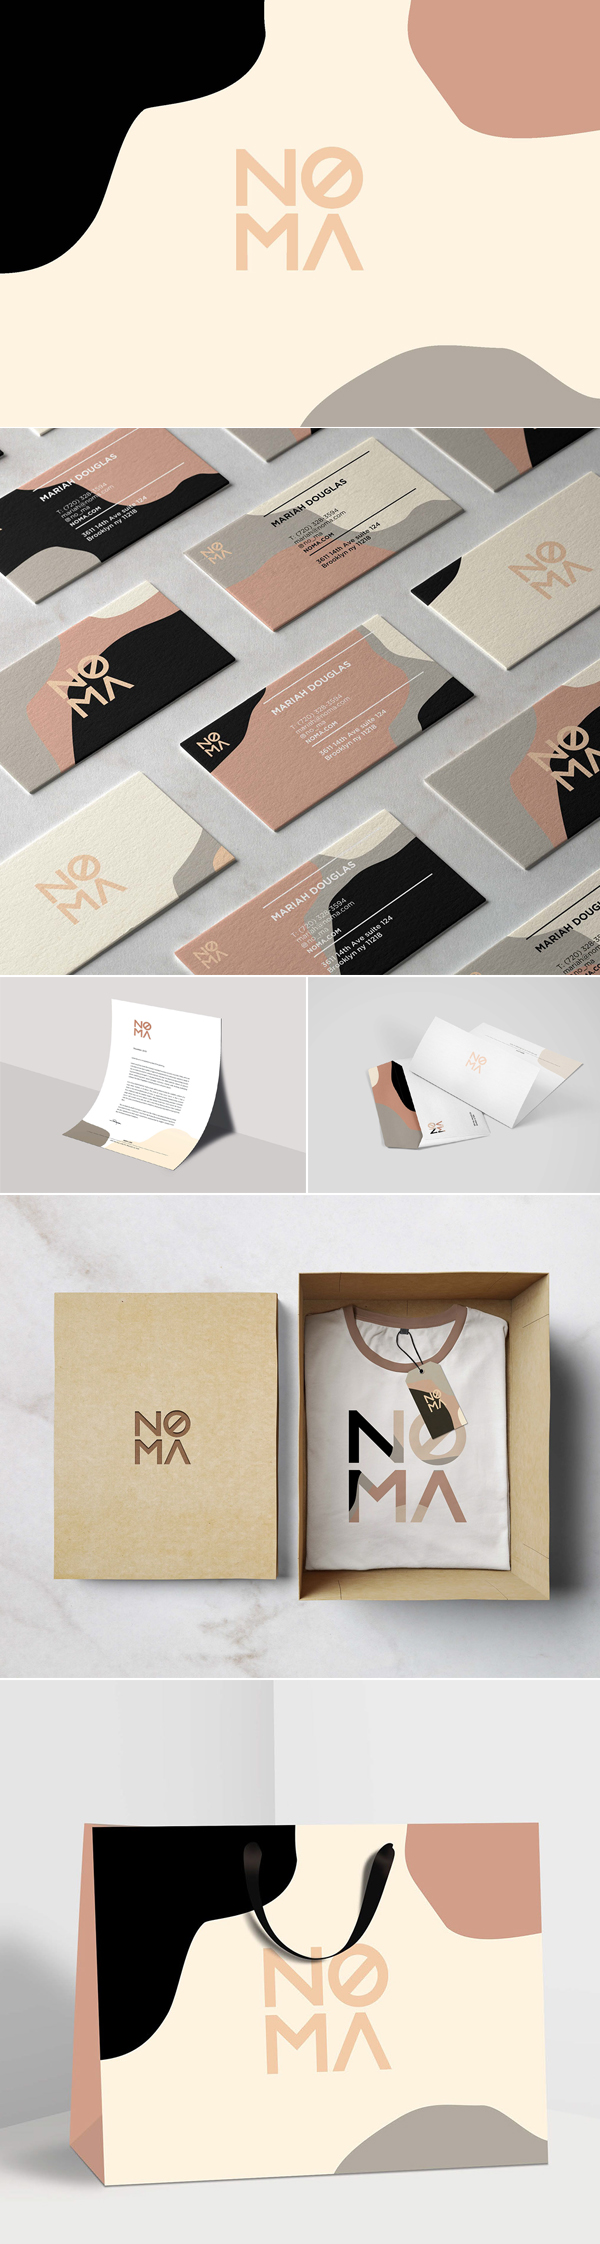 Noma Packaging Branding by Shane Wilson